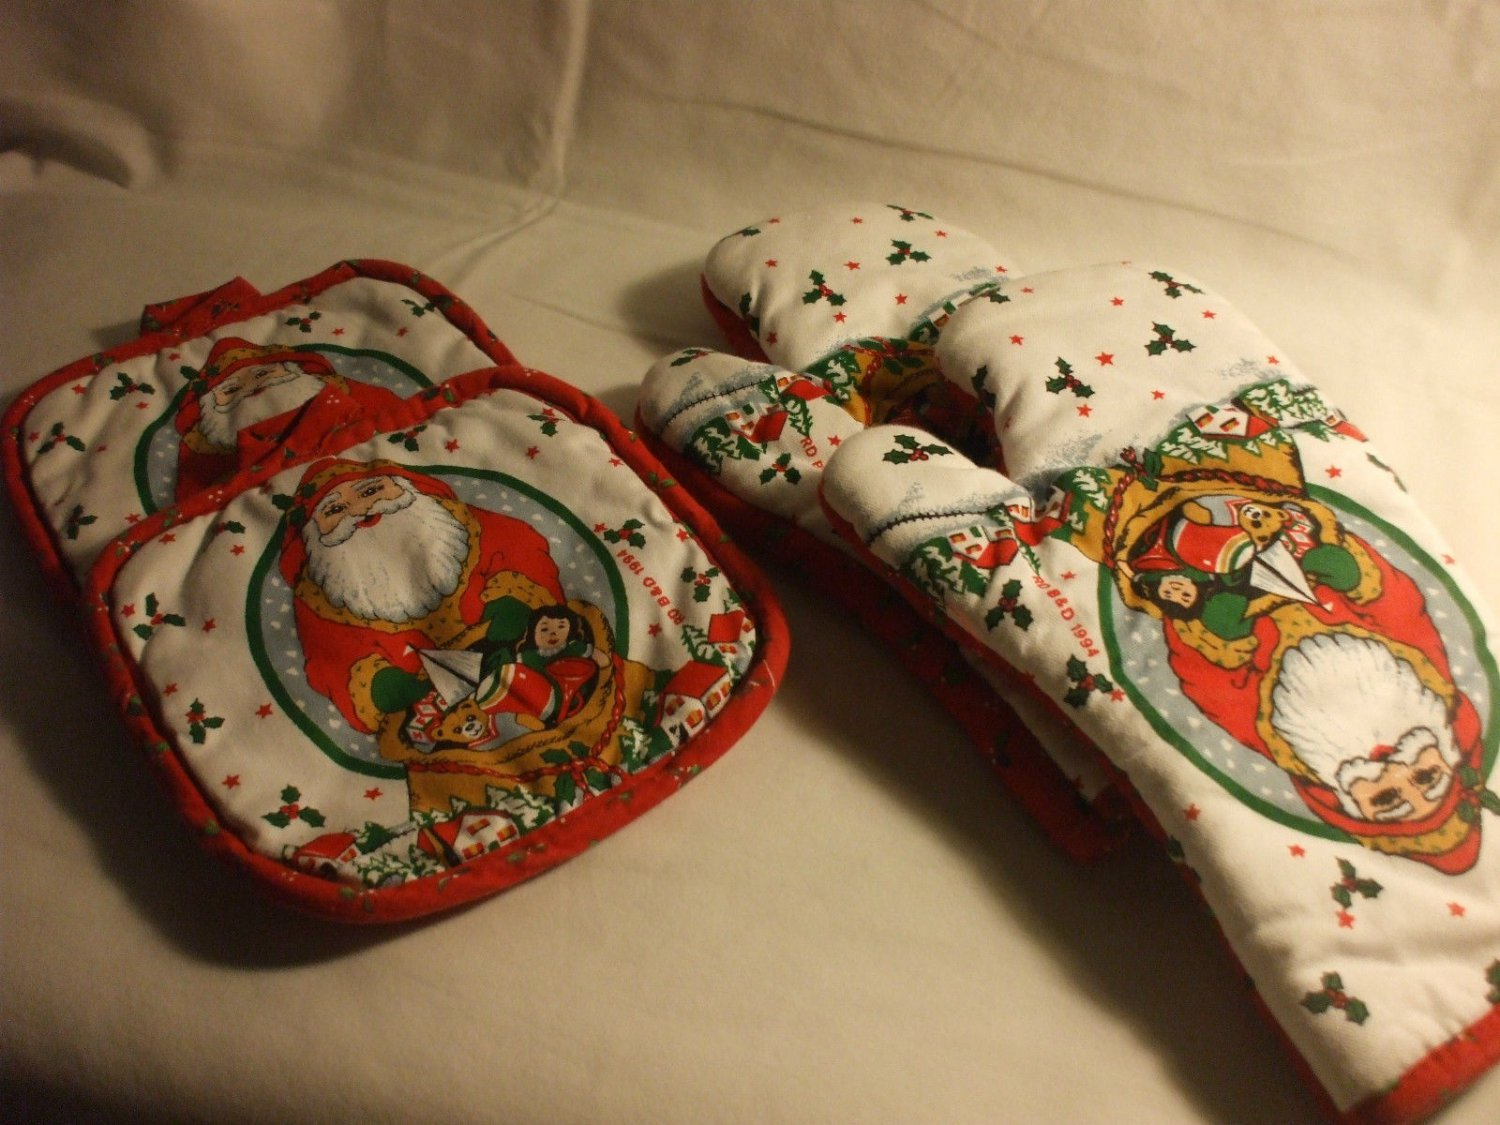 Holiday Pot Holders & Oven Mitts Cambridge Kitchen Fashions  100% Cotton